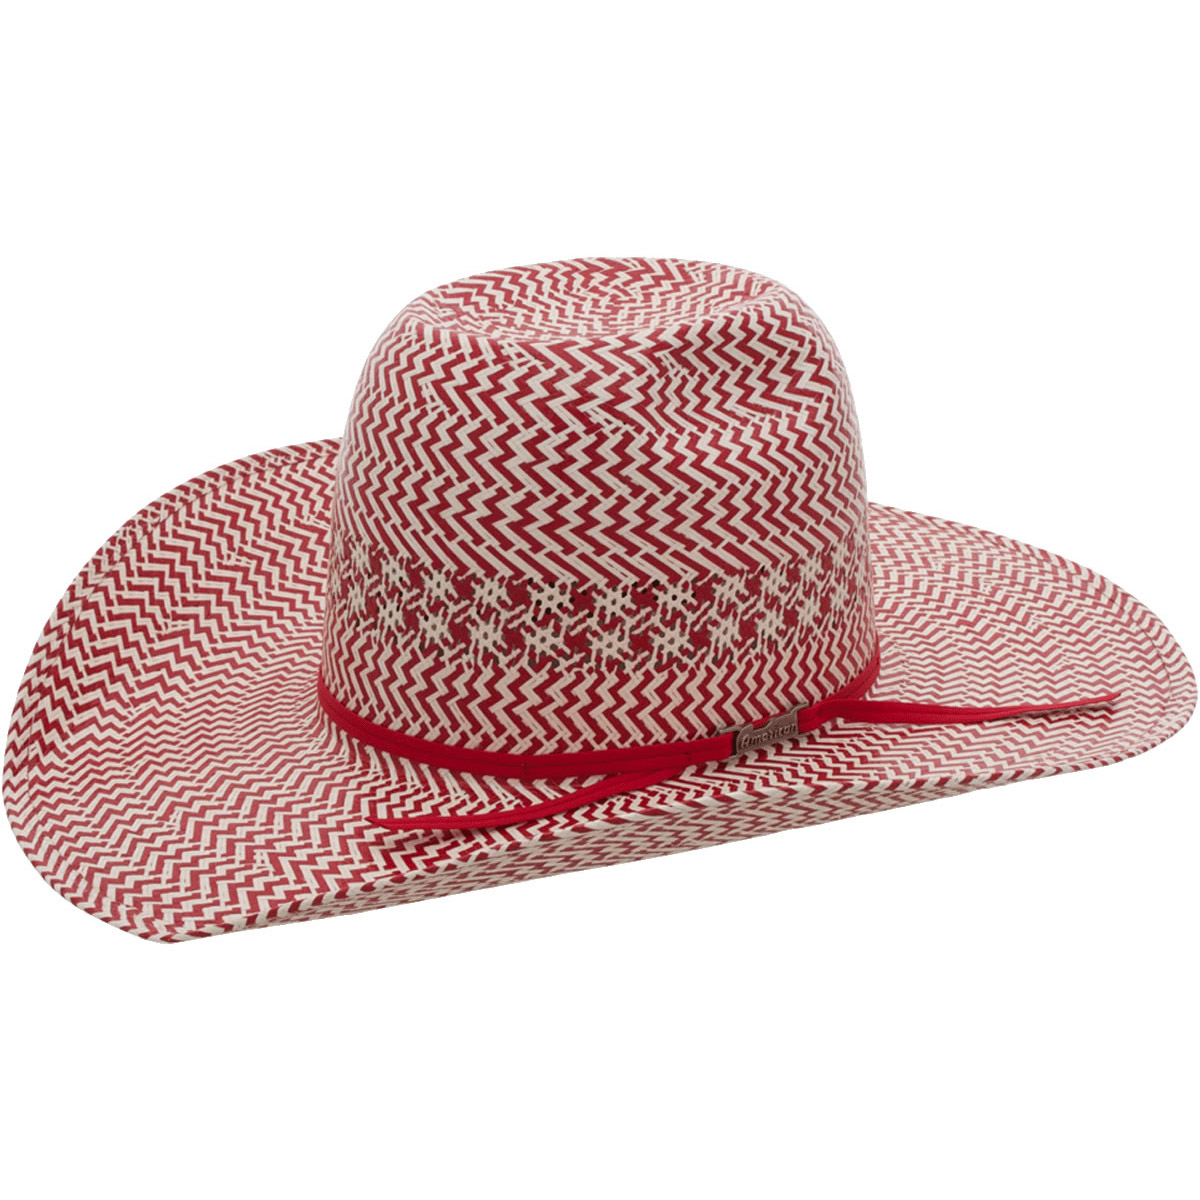 667c1d8209cee Pungo Ridge - American Hat Co 20☆ 2010 Fancy Vent Two-Tone Straw ...